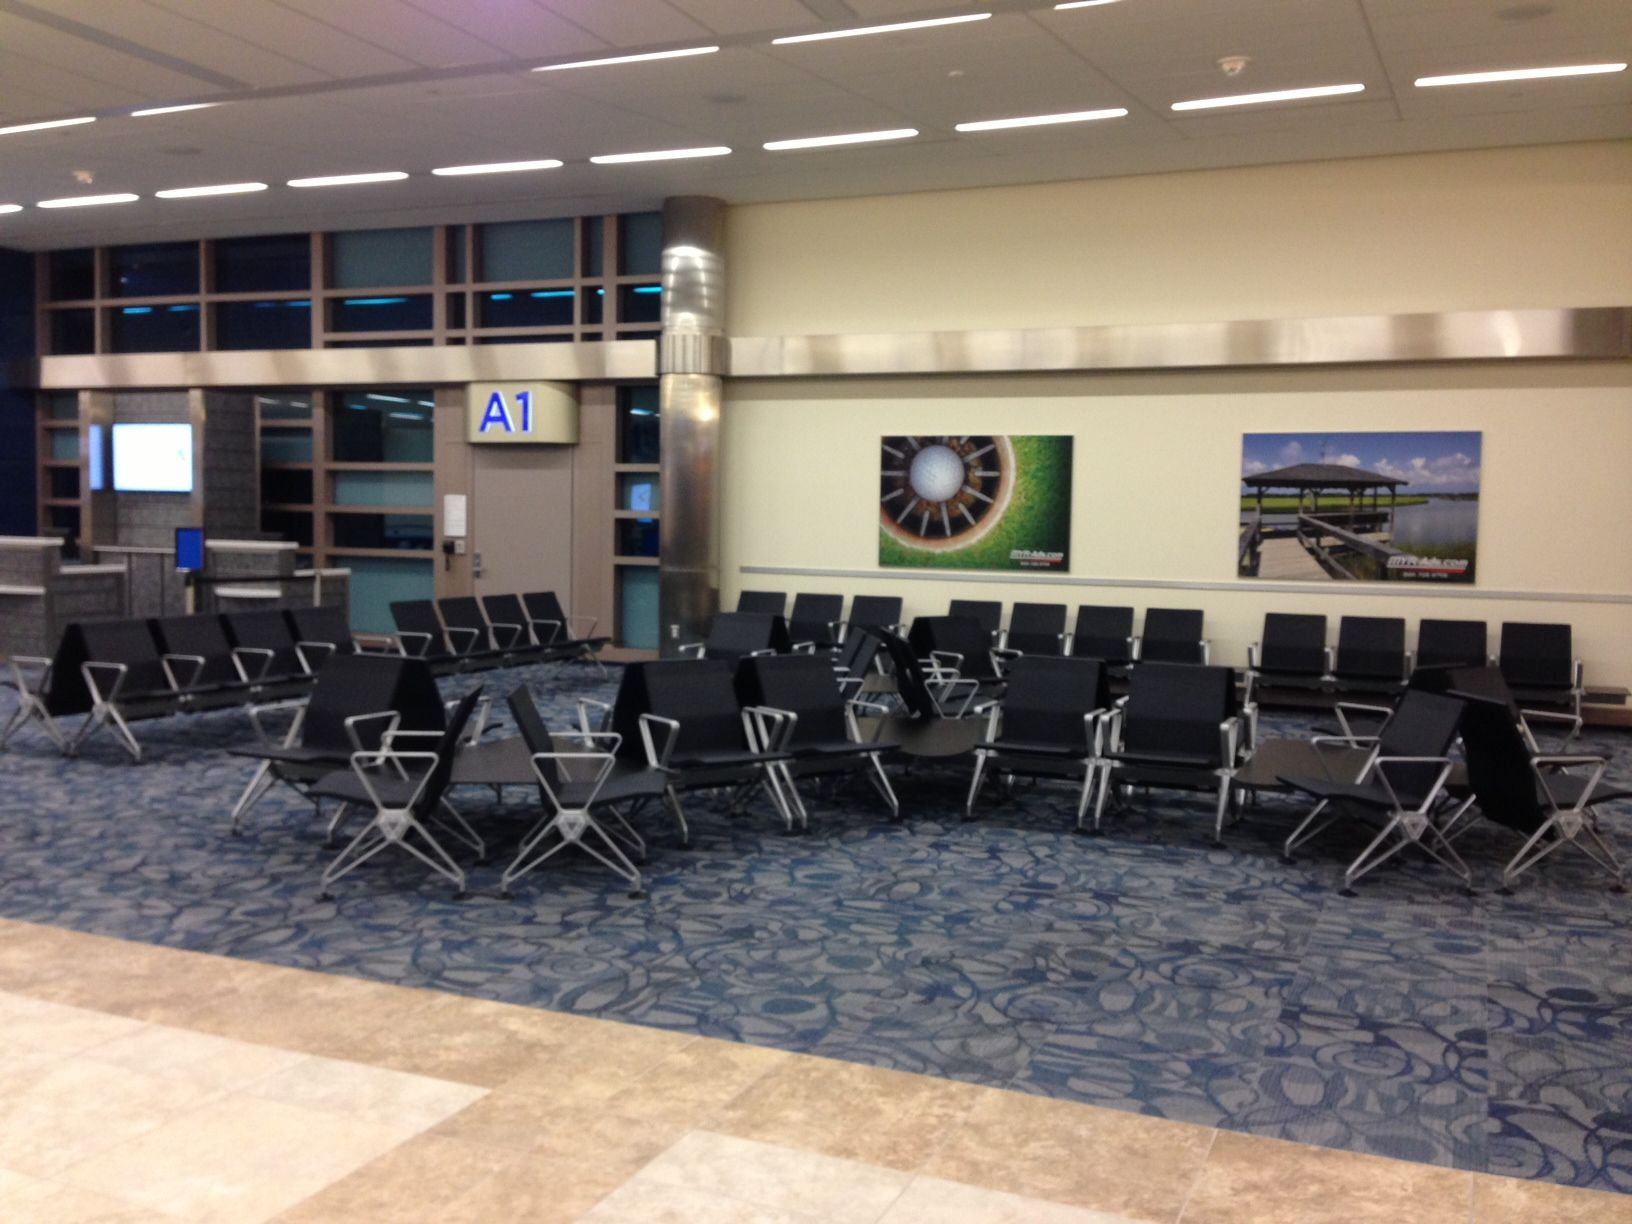 Superb Myrtle Beach Airport  Furniture   Herald Office Solutions Columbia, SC  Charleston, SC Dillon